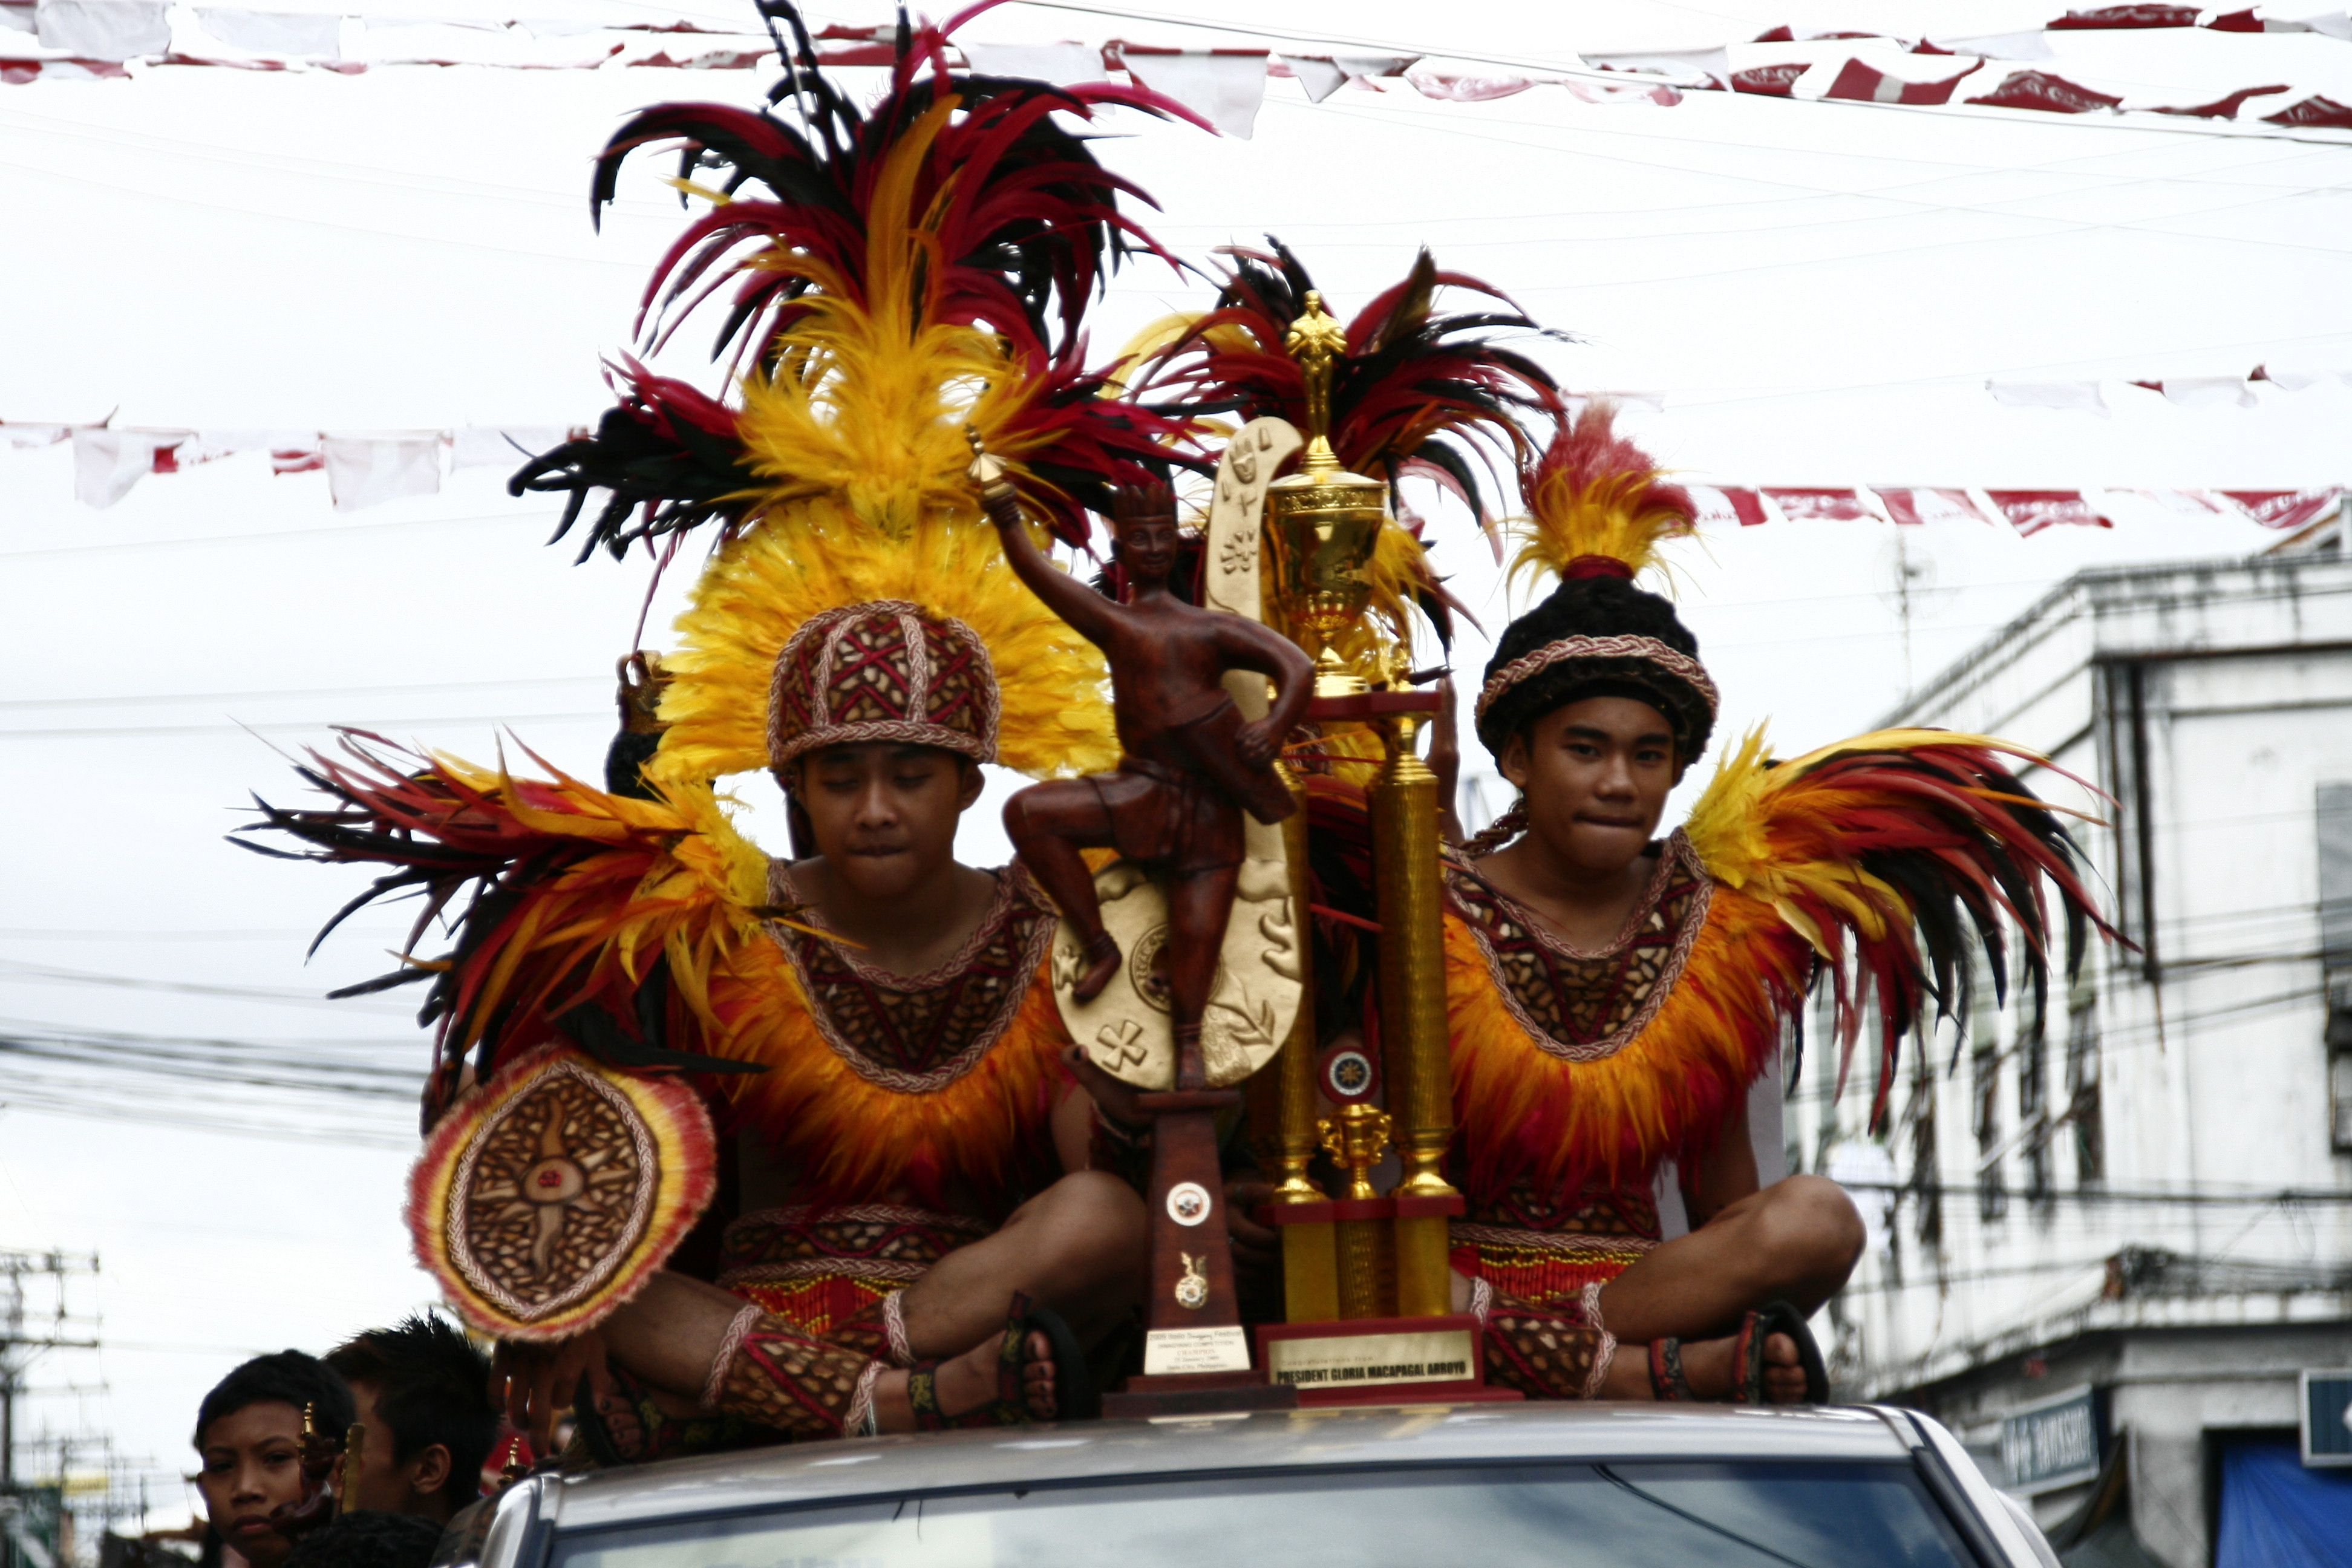 Members of Tribu Paghida-et parade their championship trophy Monday afternoon. (Photo by Tara Yap)